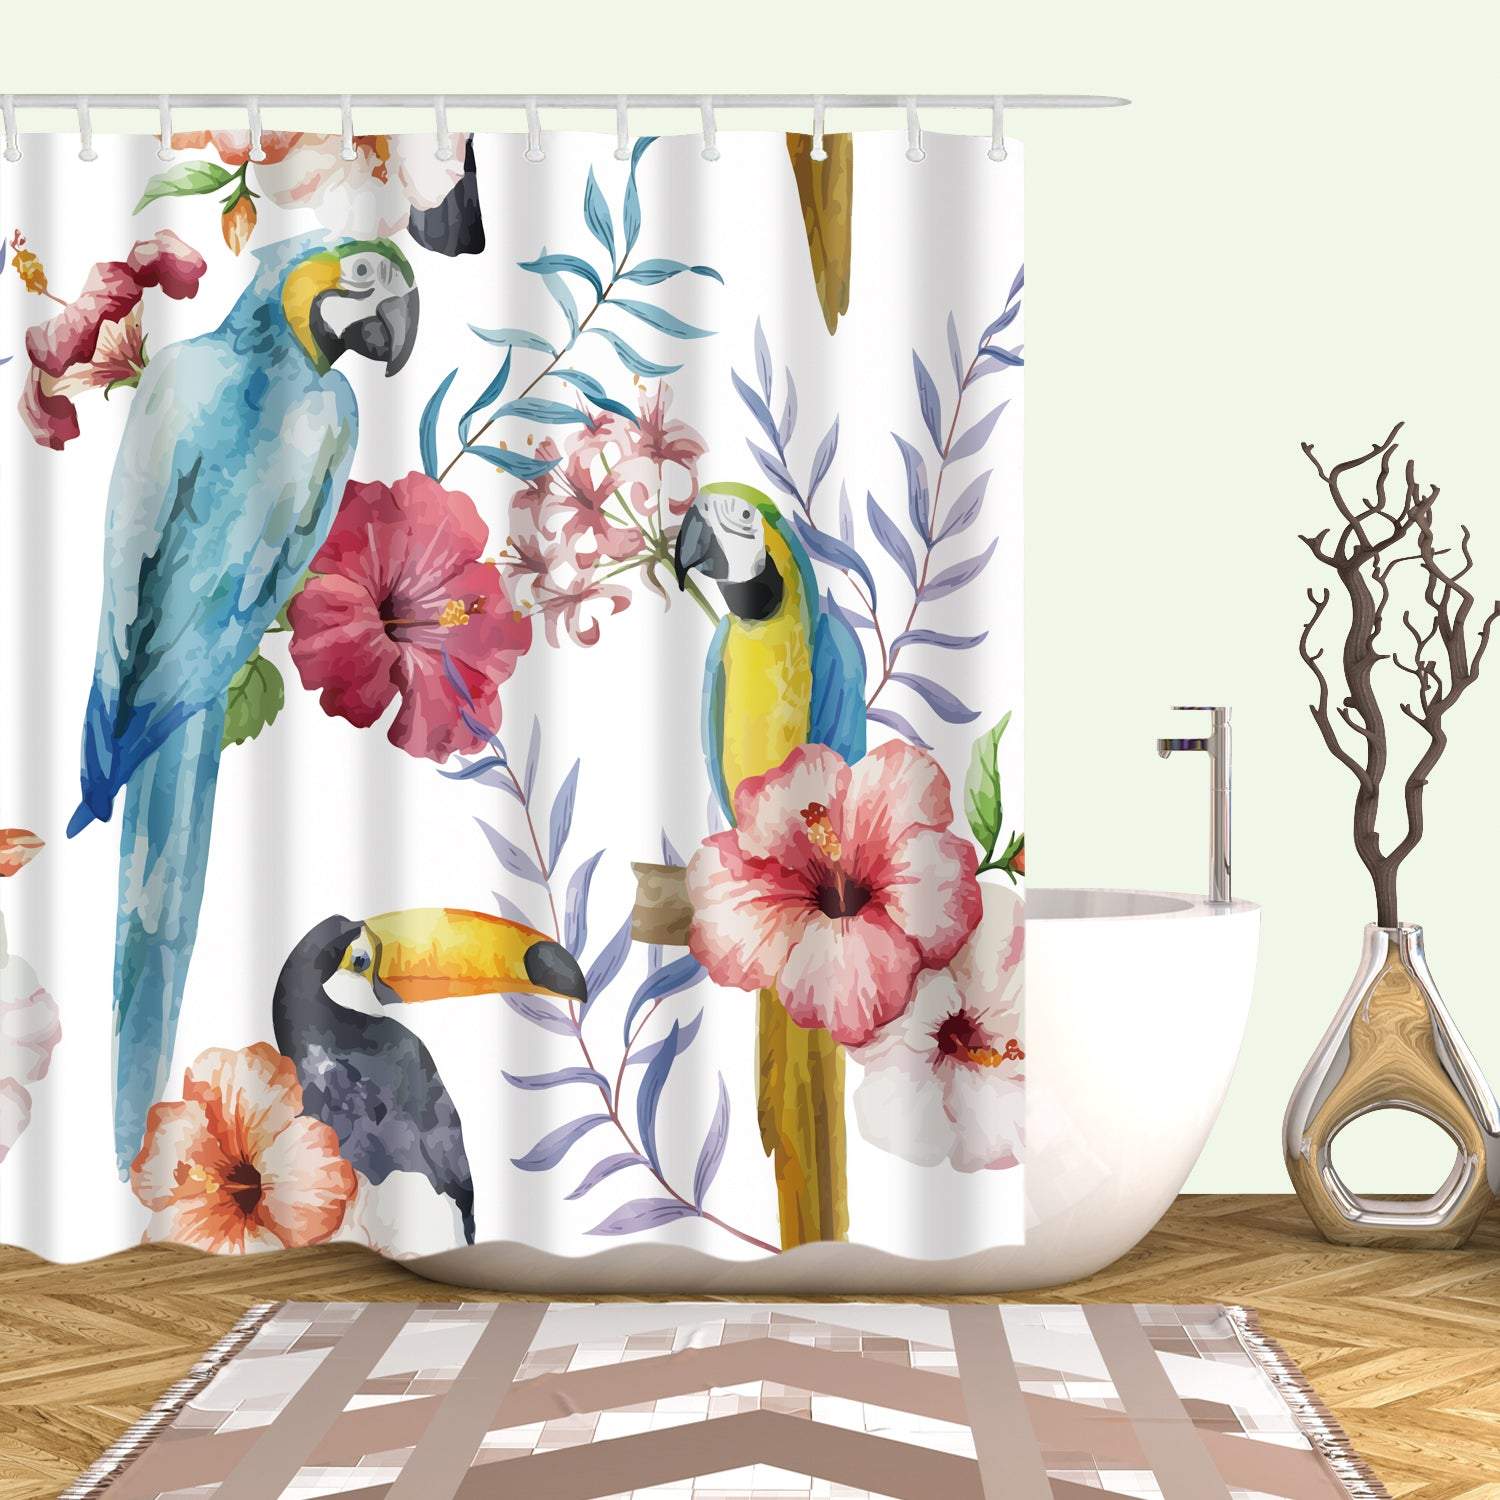 birds bird curtains shower curtain rowley lushdecor lush decor multi com products